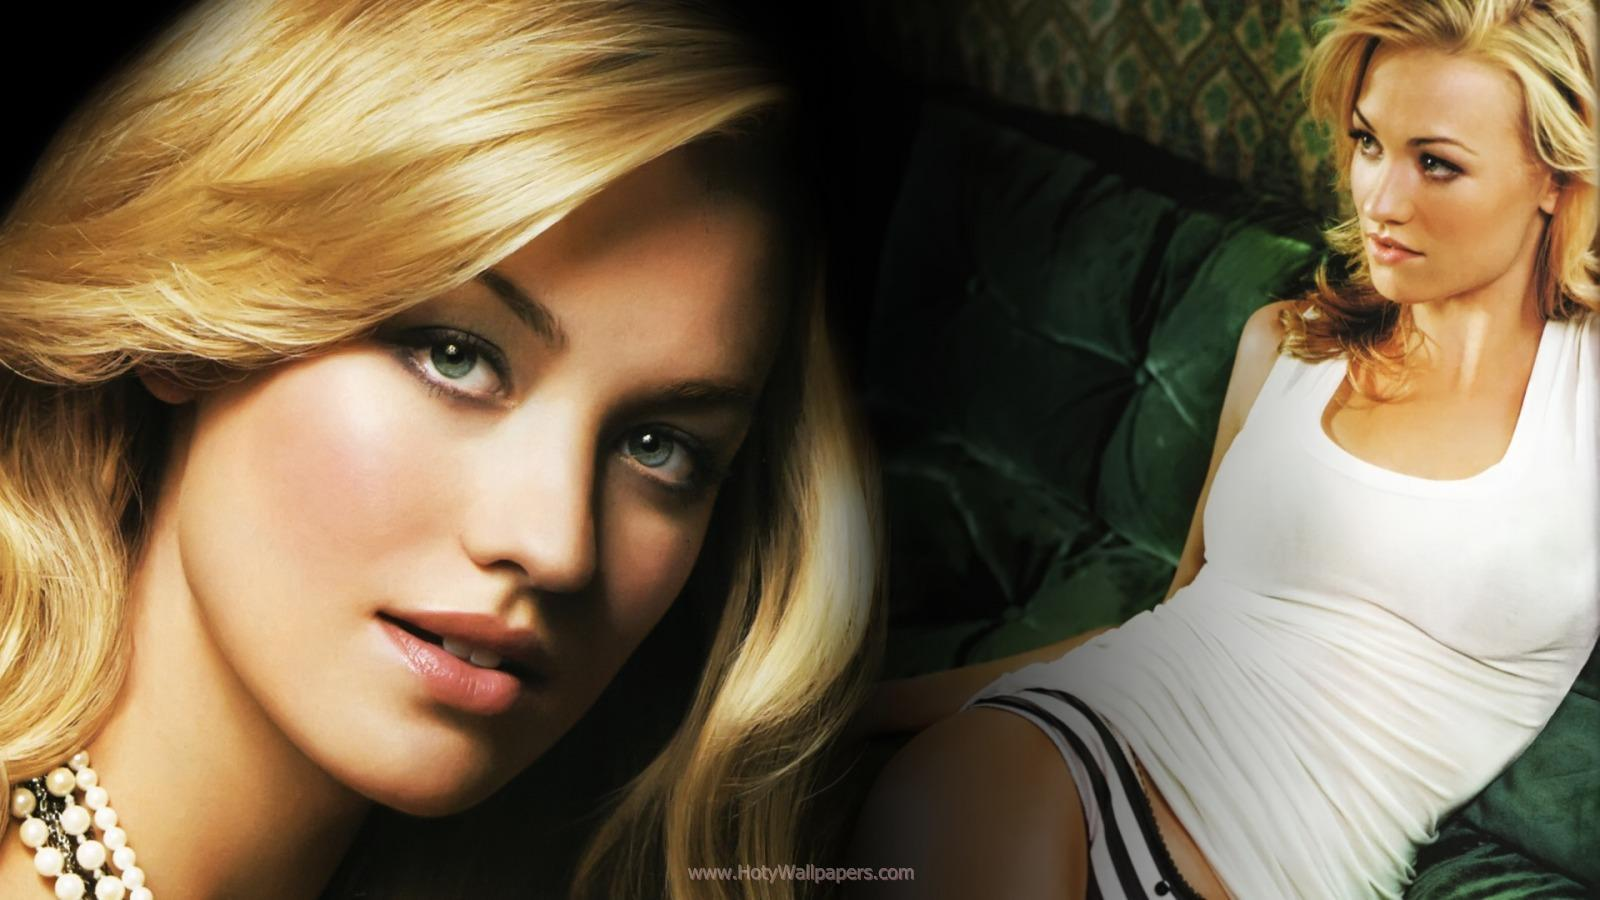 Hollywood Glamour Wallpapers 1600x900